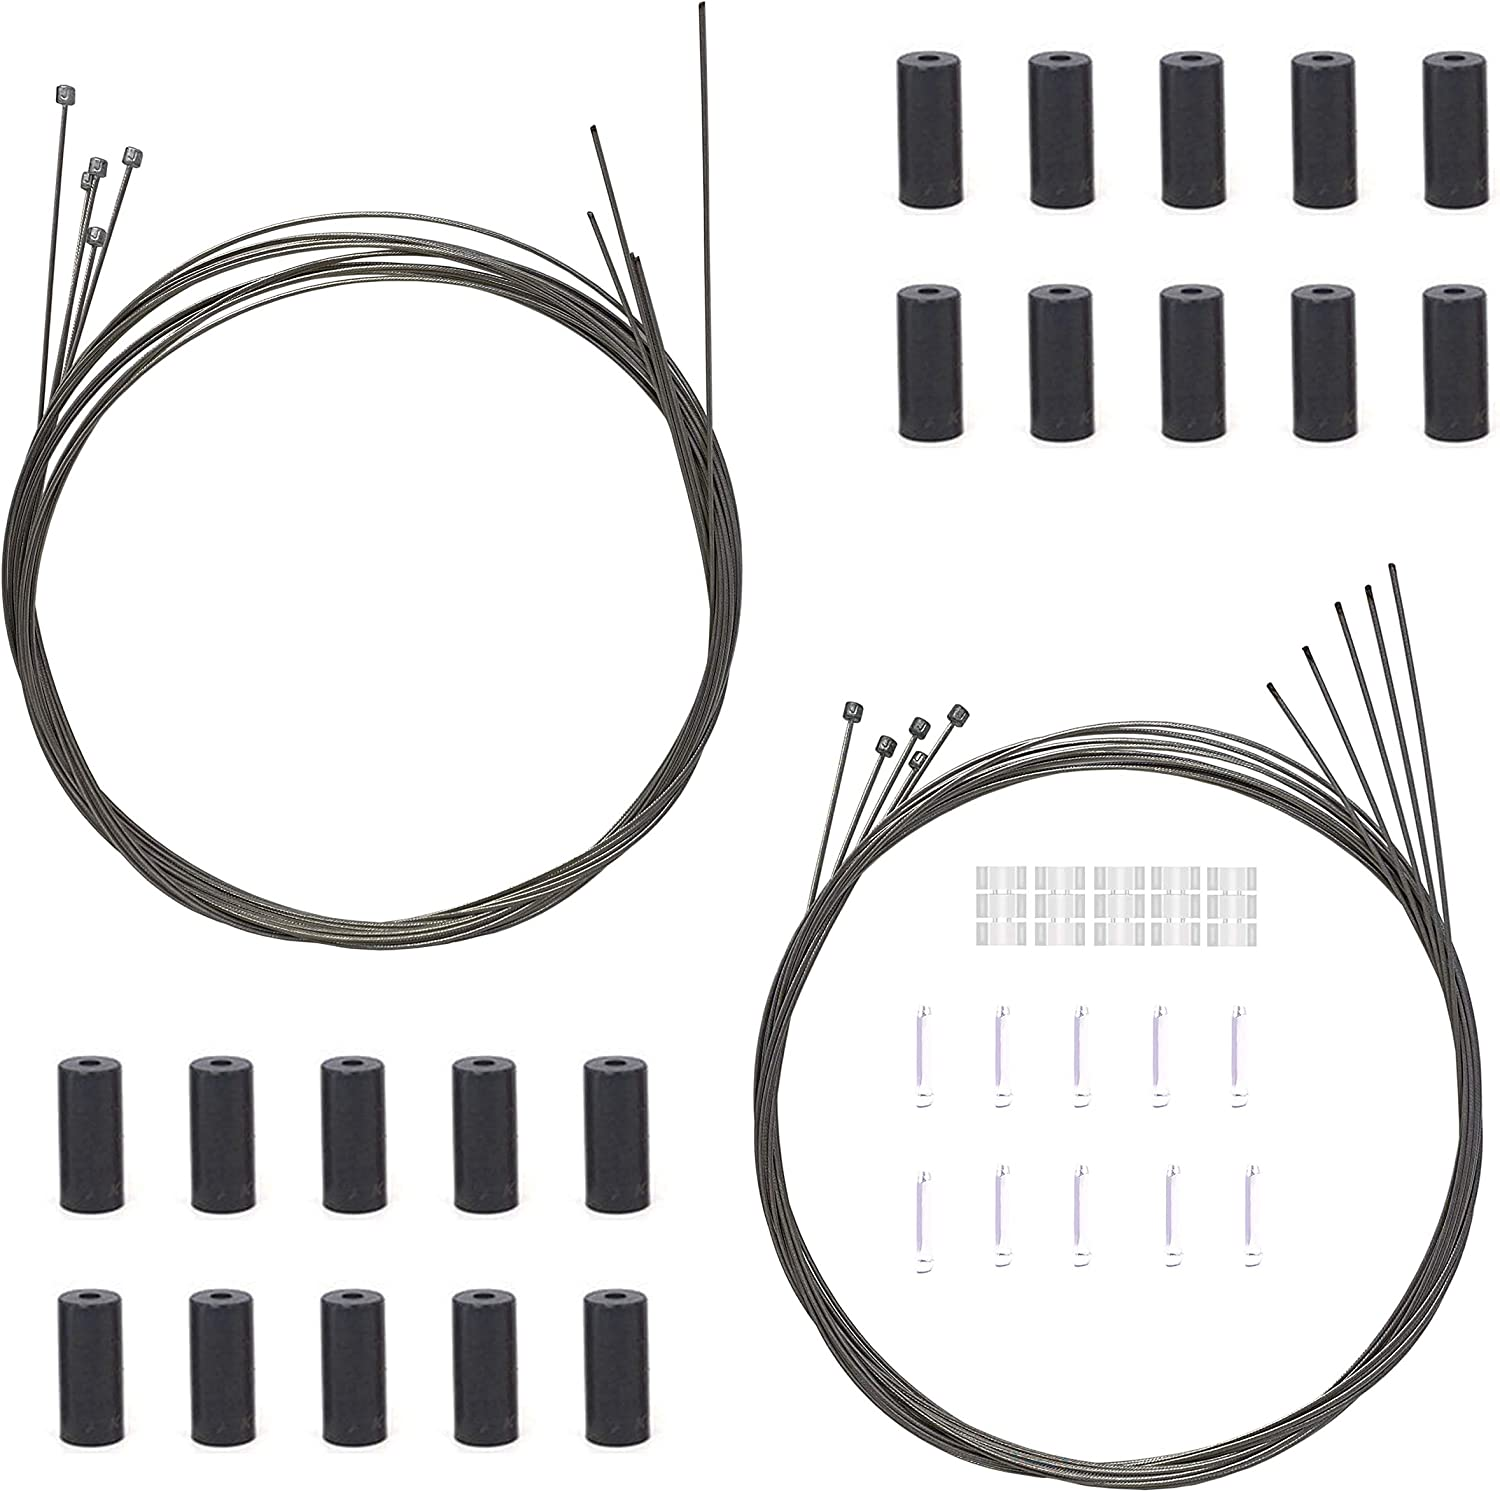 DEYING 10PCS shipfree Premium Stainless Steel Shift Max 58% OFF - Cable Bike Professi